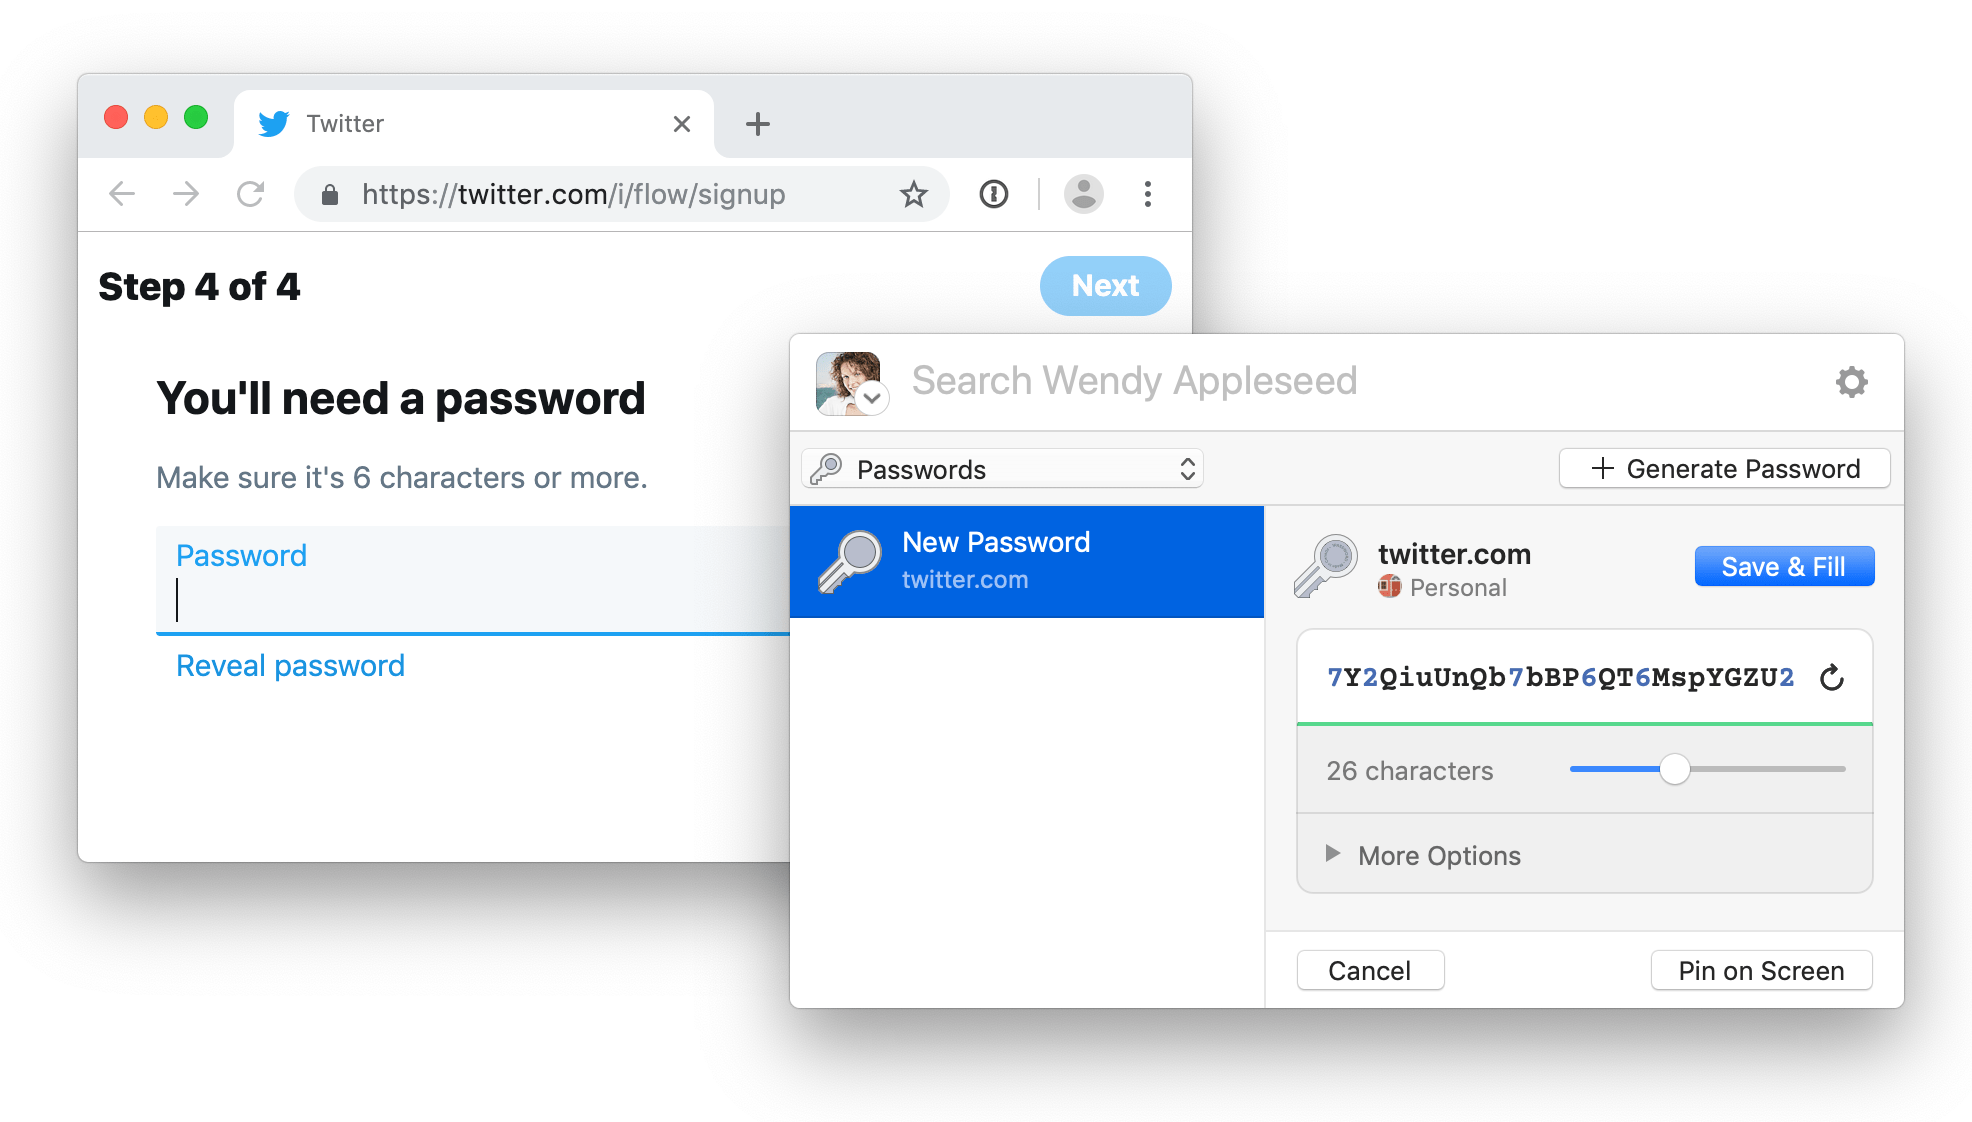 Use the 1Password extension to create a new password